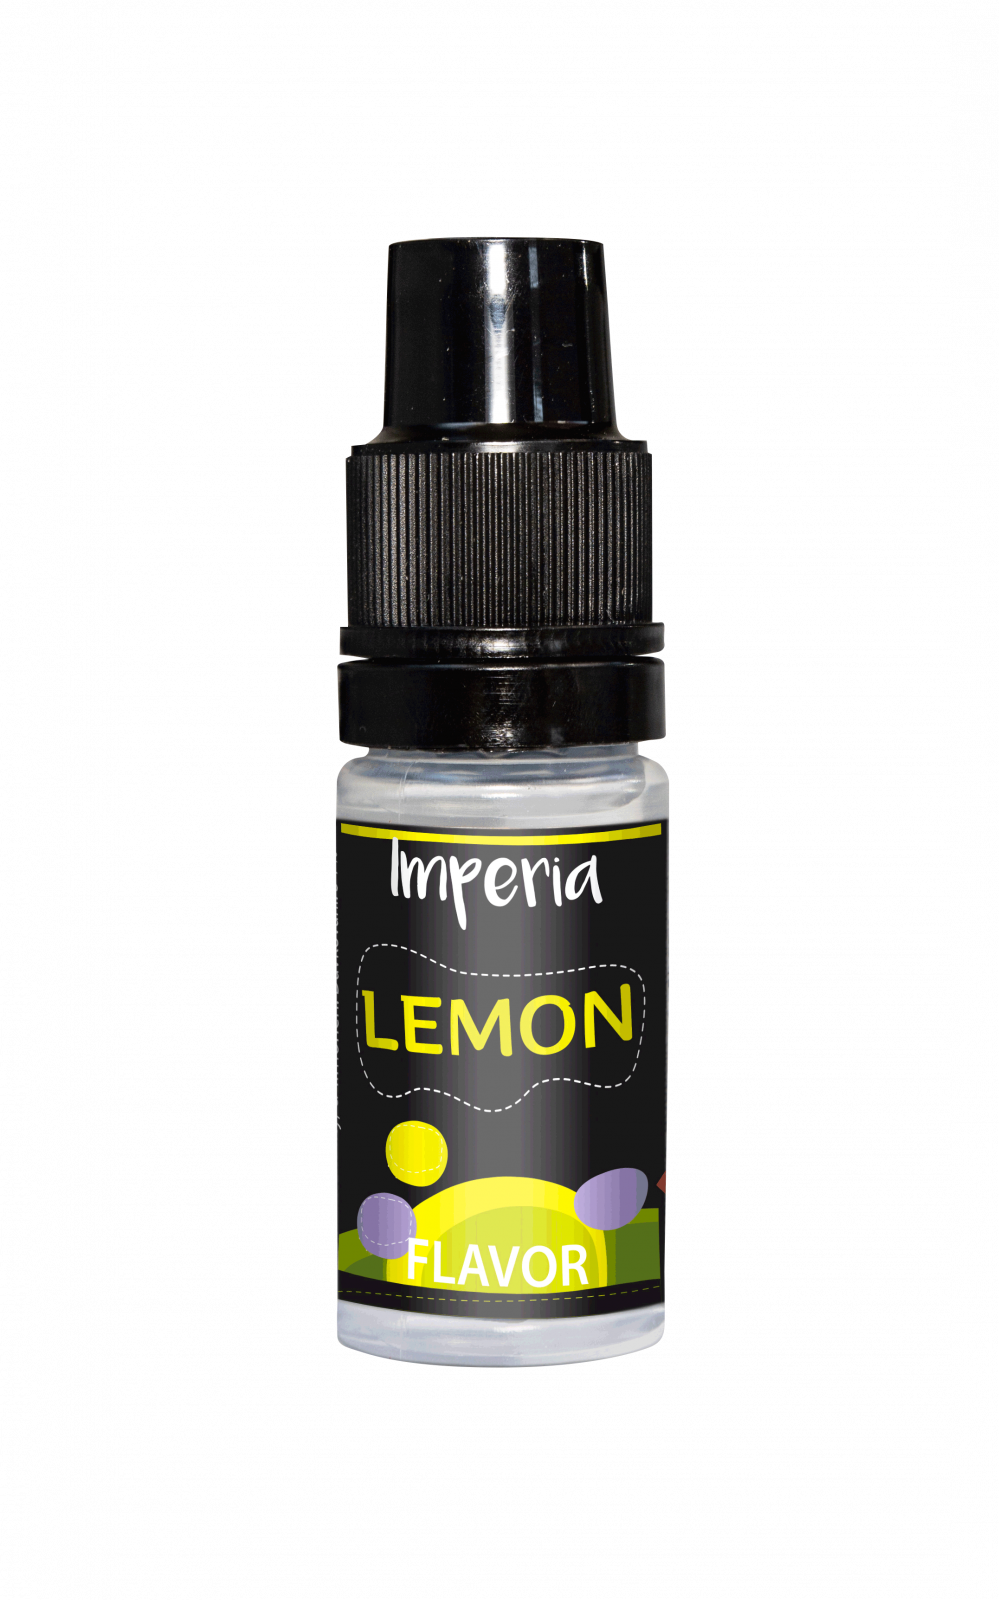 CITRÓN / Lemon - Aróma Imperia Black Label 10 ml Boudoir Samadhi s.r.o.